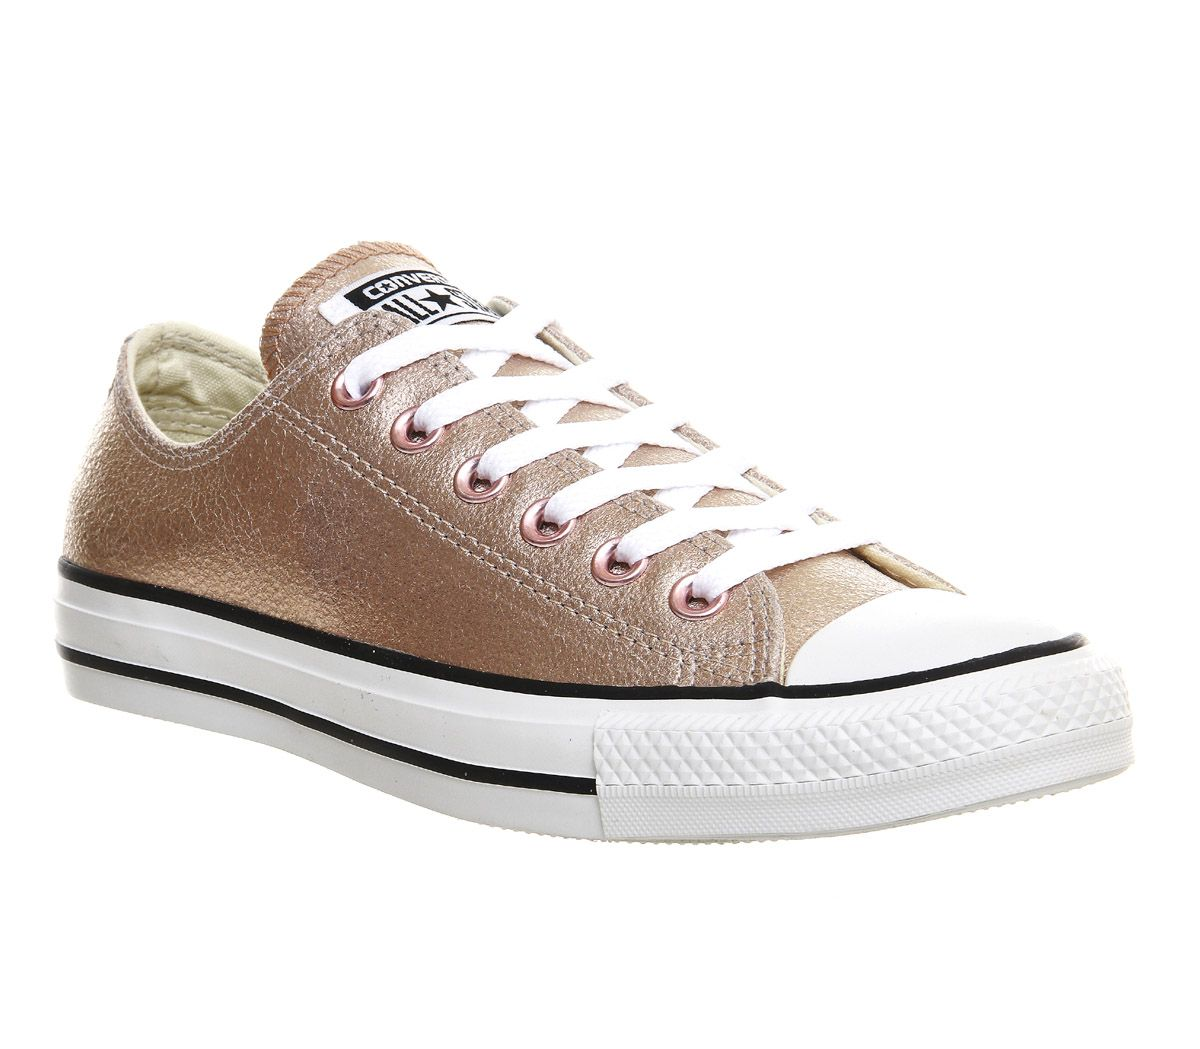 Converse Allstar Low Lthr Rose Gold Exclusive - Unisex Sports ... bd425ea87